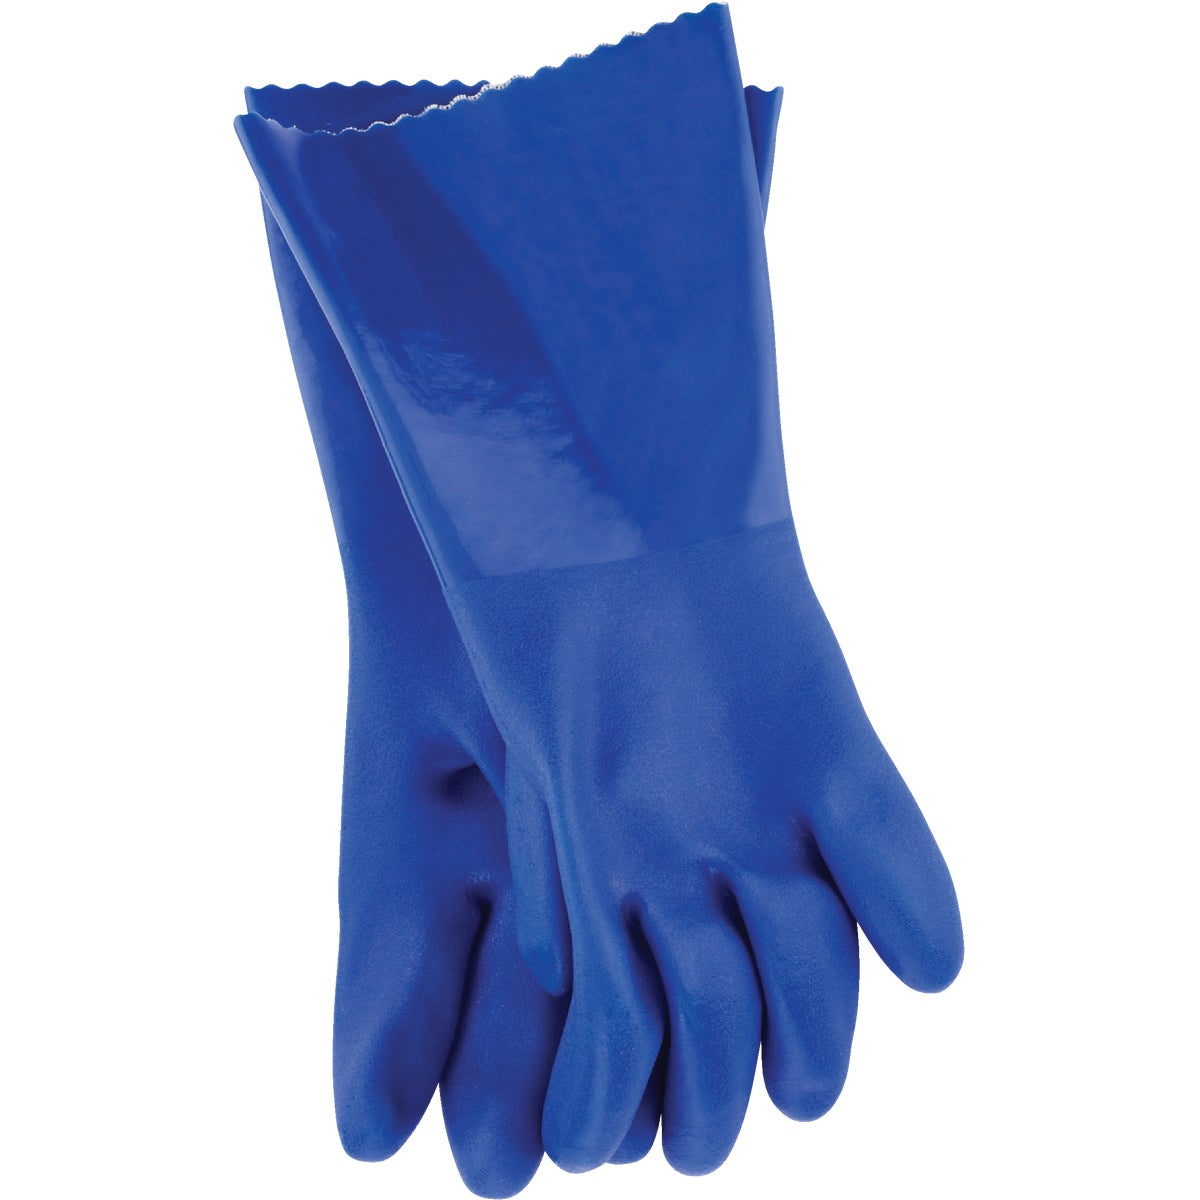 LG PVC CLEANING GLOVE